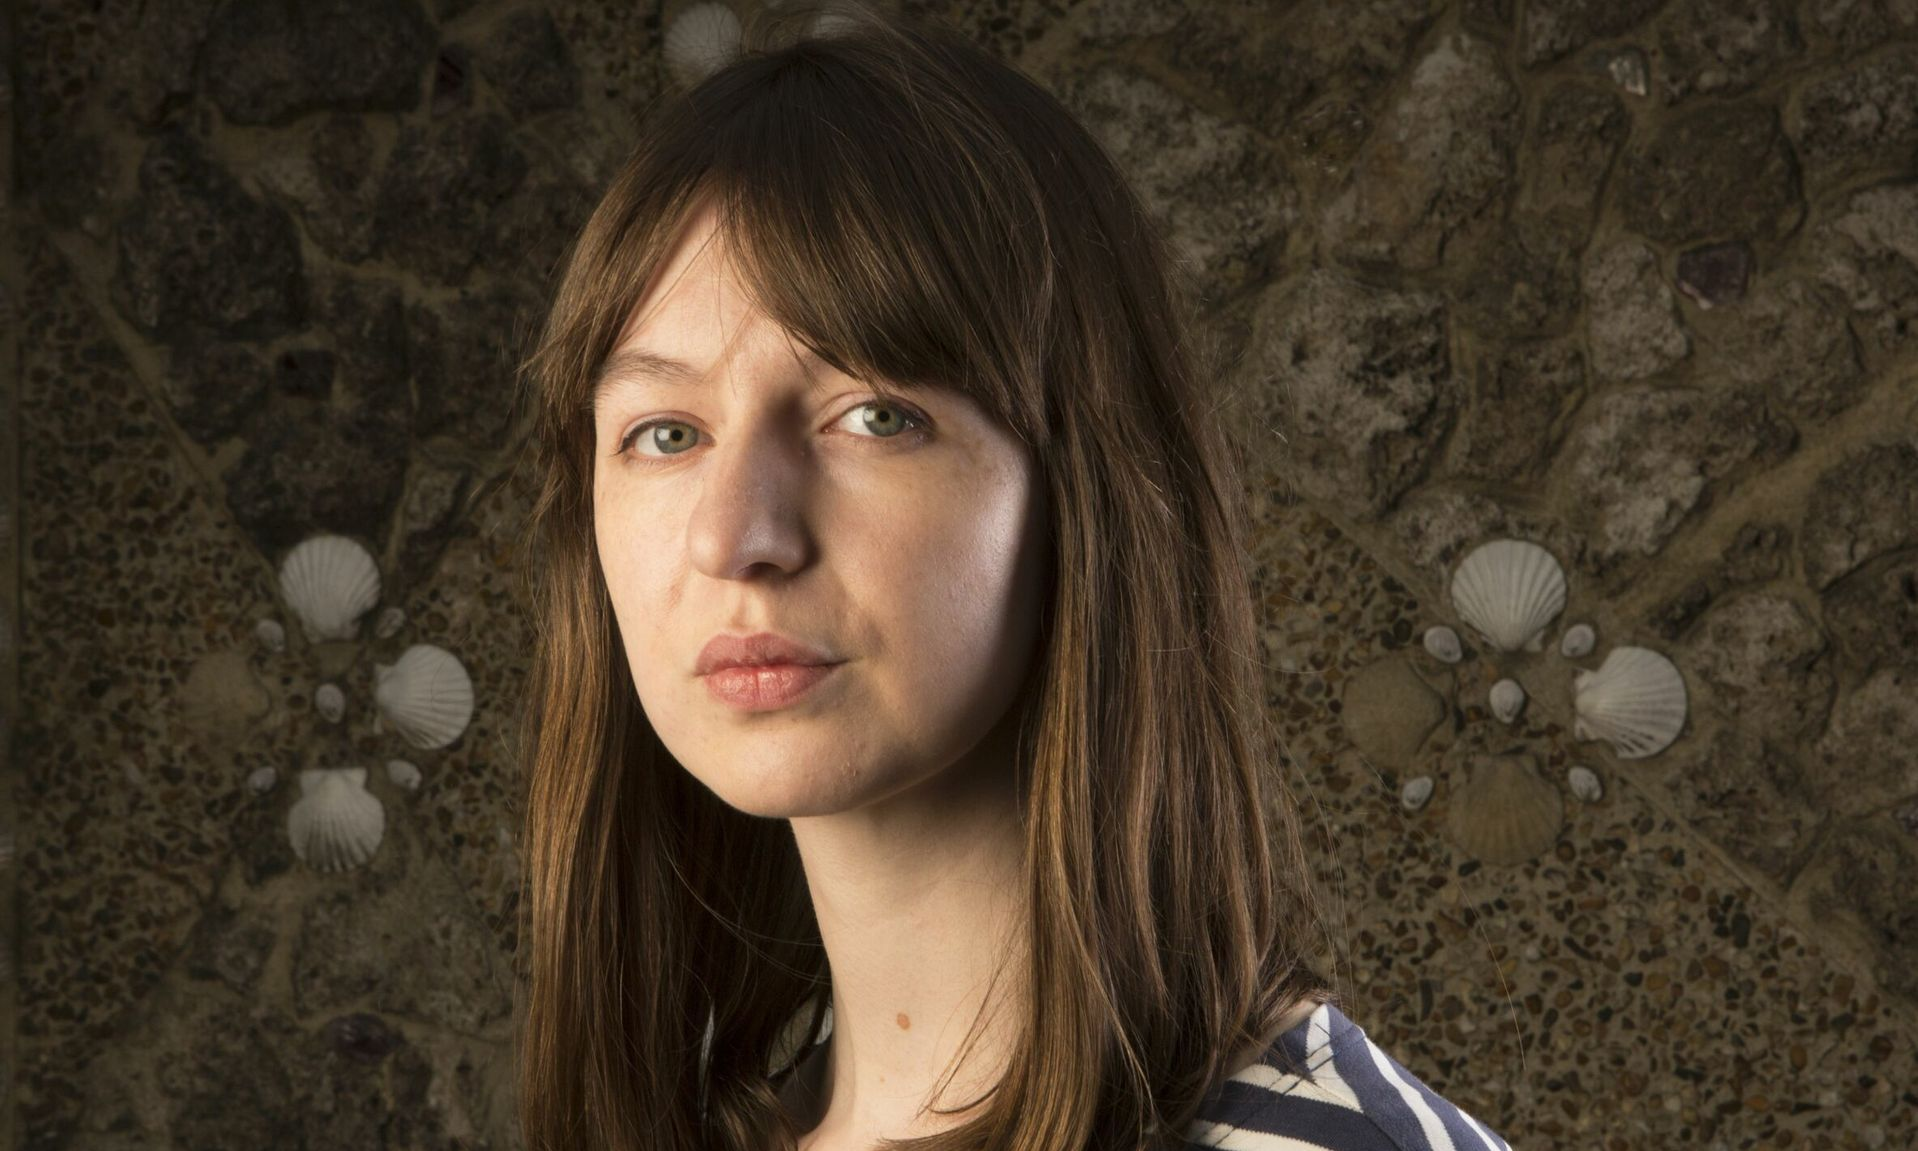 'Normal People' author Sally Rooney holds off on Hebrew translation of new novel citing BDS campaign